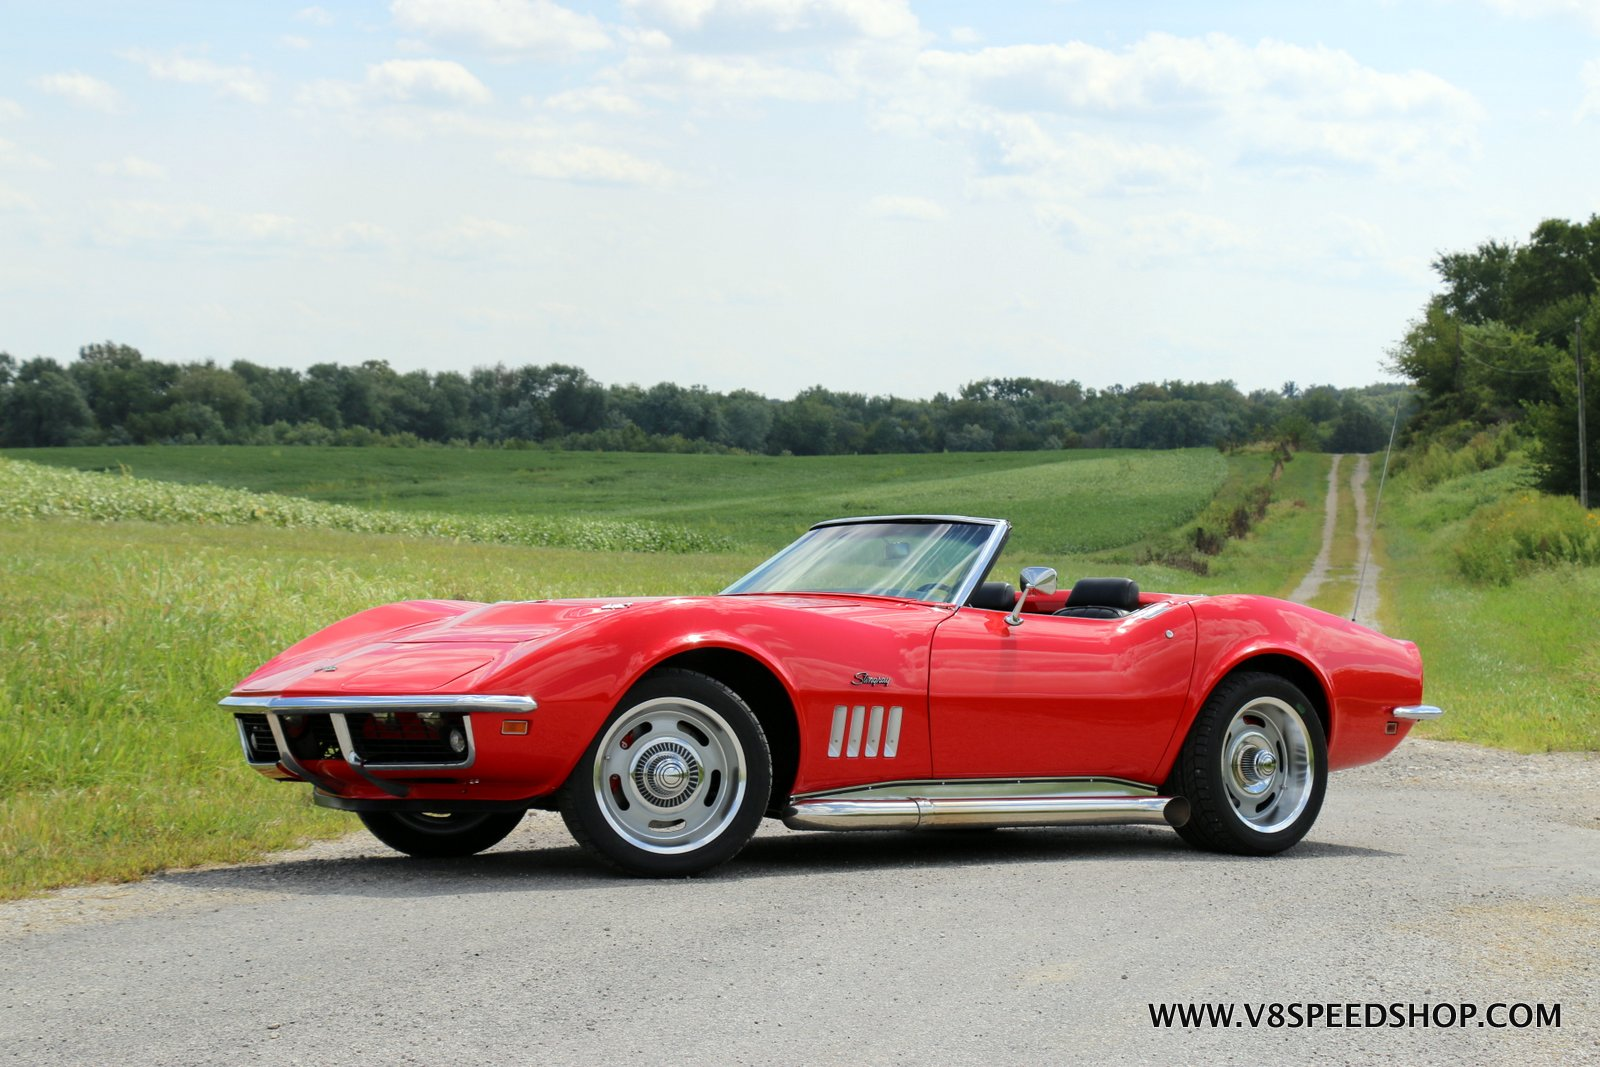 1969 Chevrolet Corvette LS3 T56 6-Speed Swap at V8 Speed & Resto Shop Photo Gallery